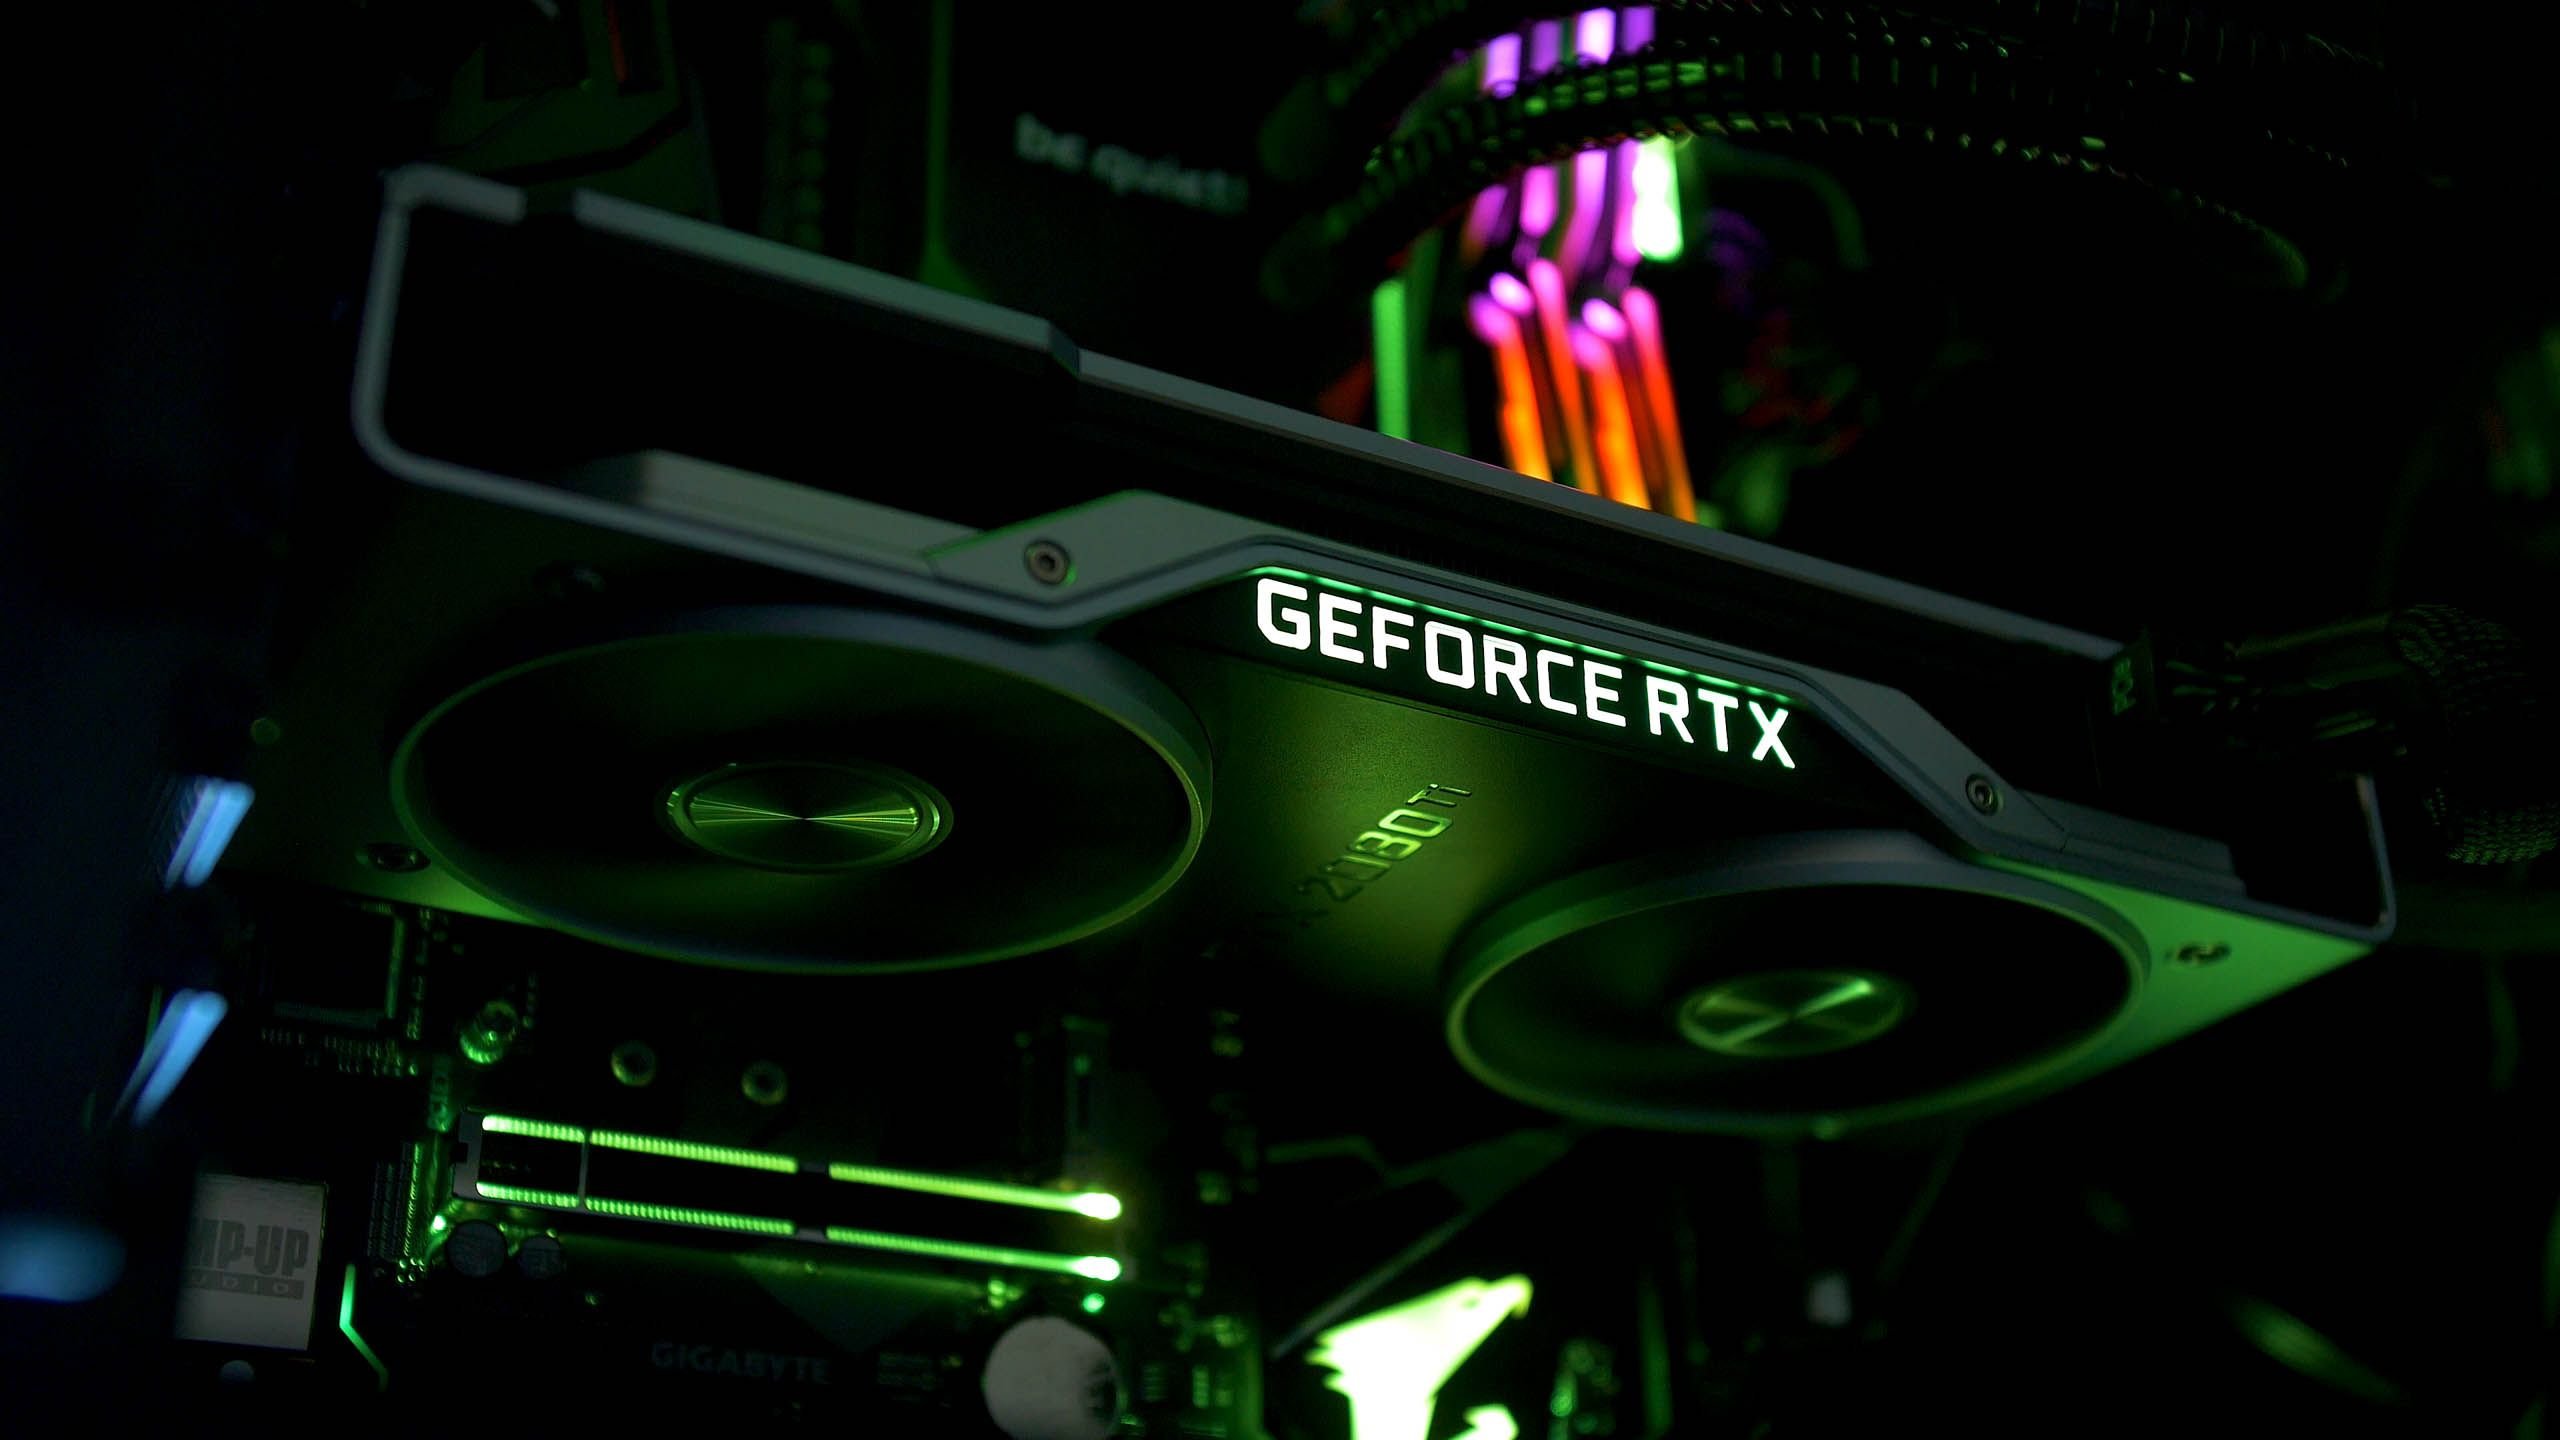 Nvidia Rtx Wallpapers Top Free Nvidia Rtx Backgrounds Wallpaperaccess